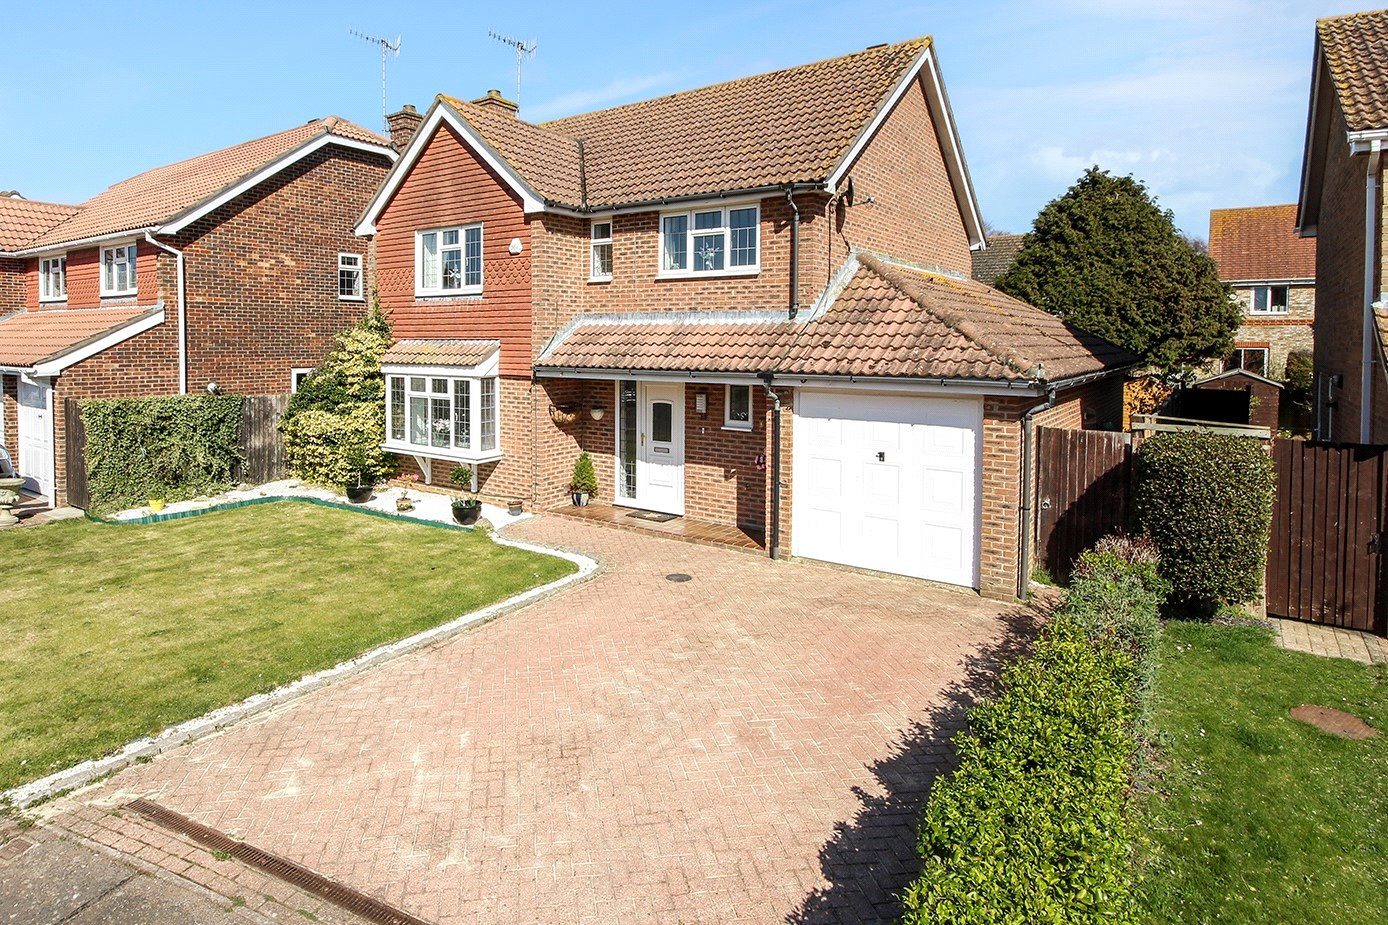 4 bed house for sale in Apple Tree Walk, Climping, BN17